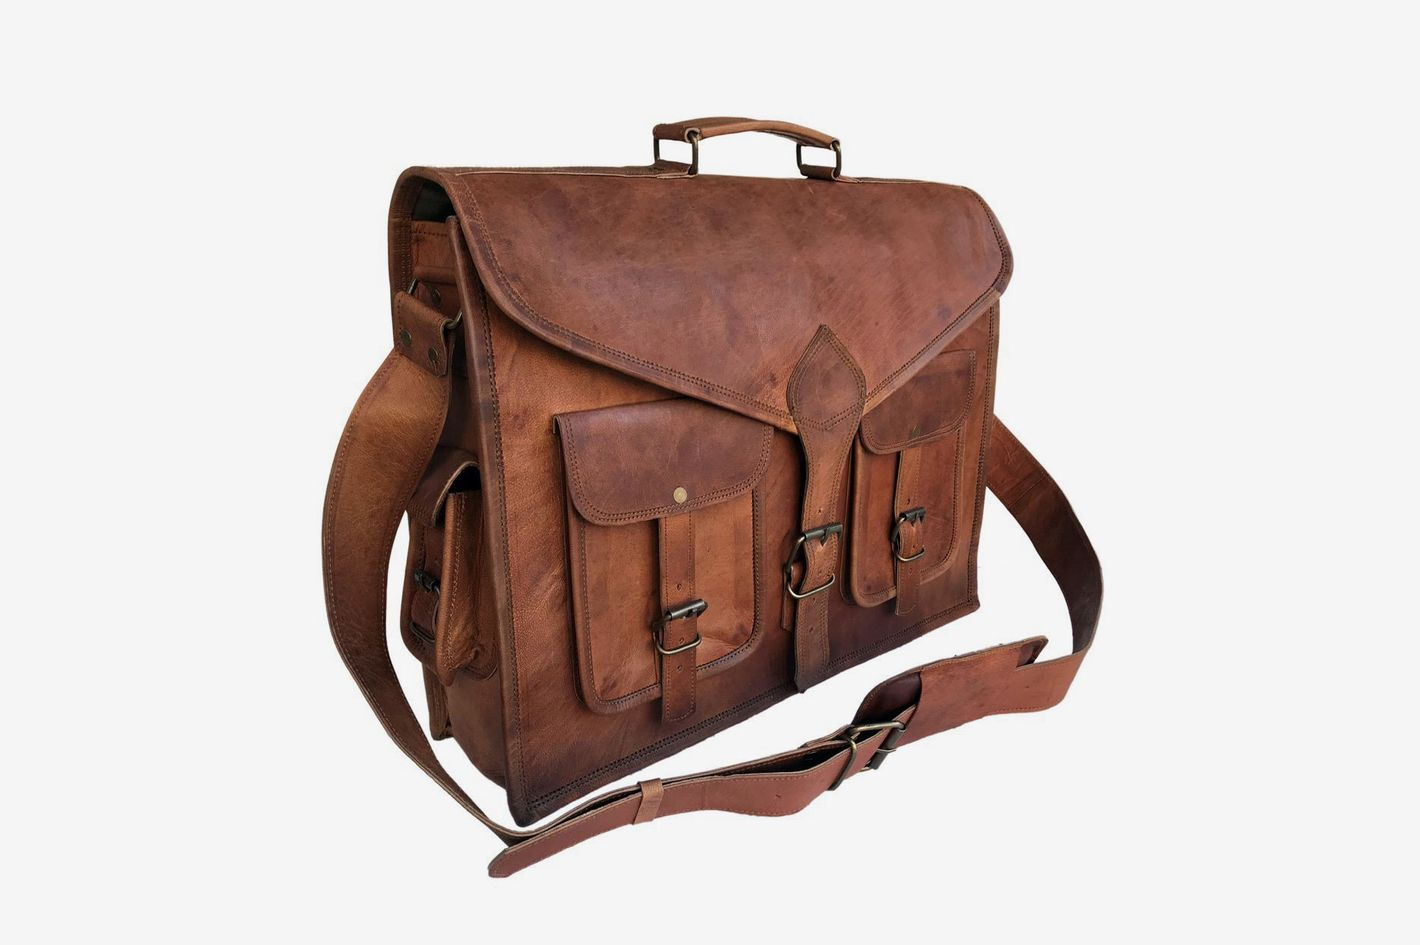 e5138f65dc Komal s Passion Leather Rustic Vintage Leather Messenger Bag